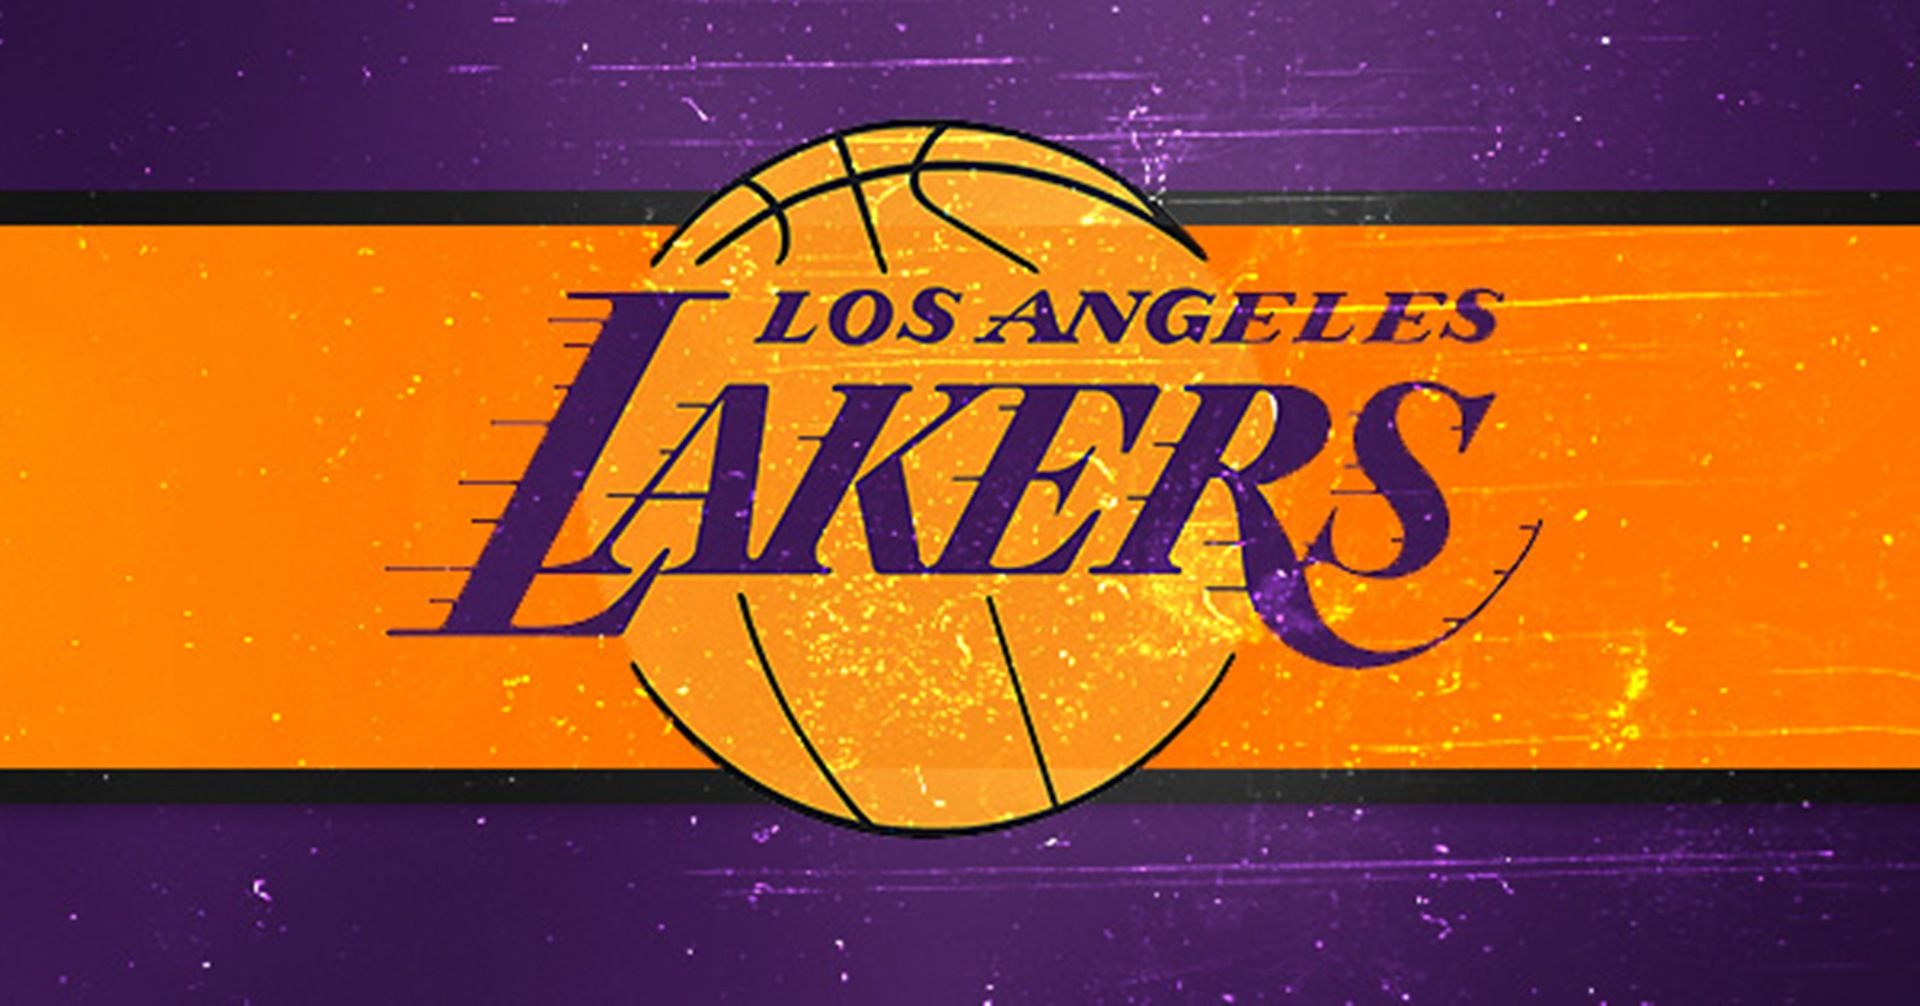 pics photos los angeles lakers logo wallpaper background